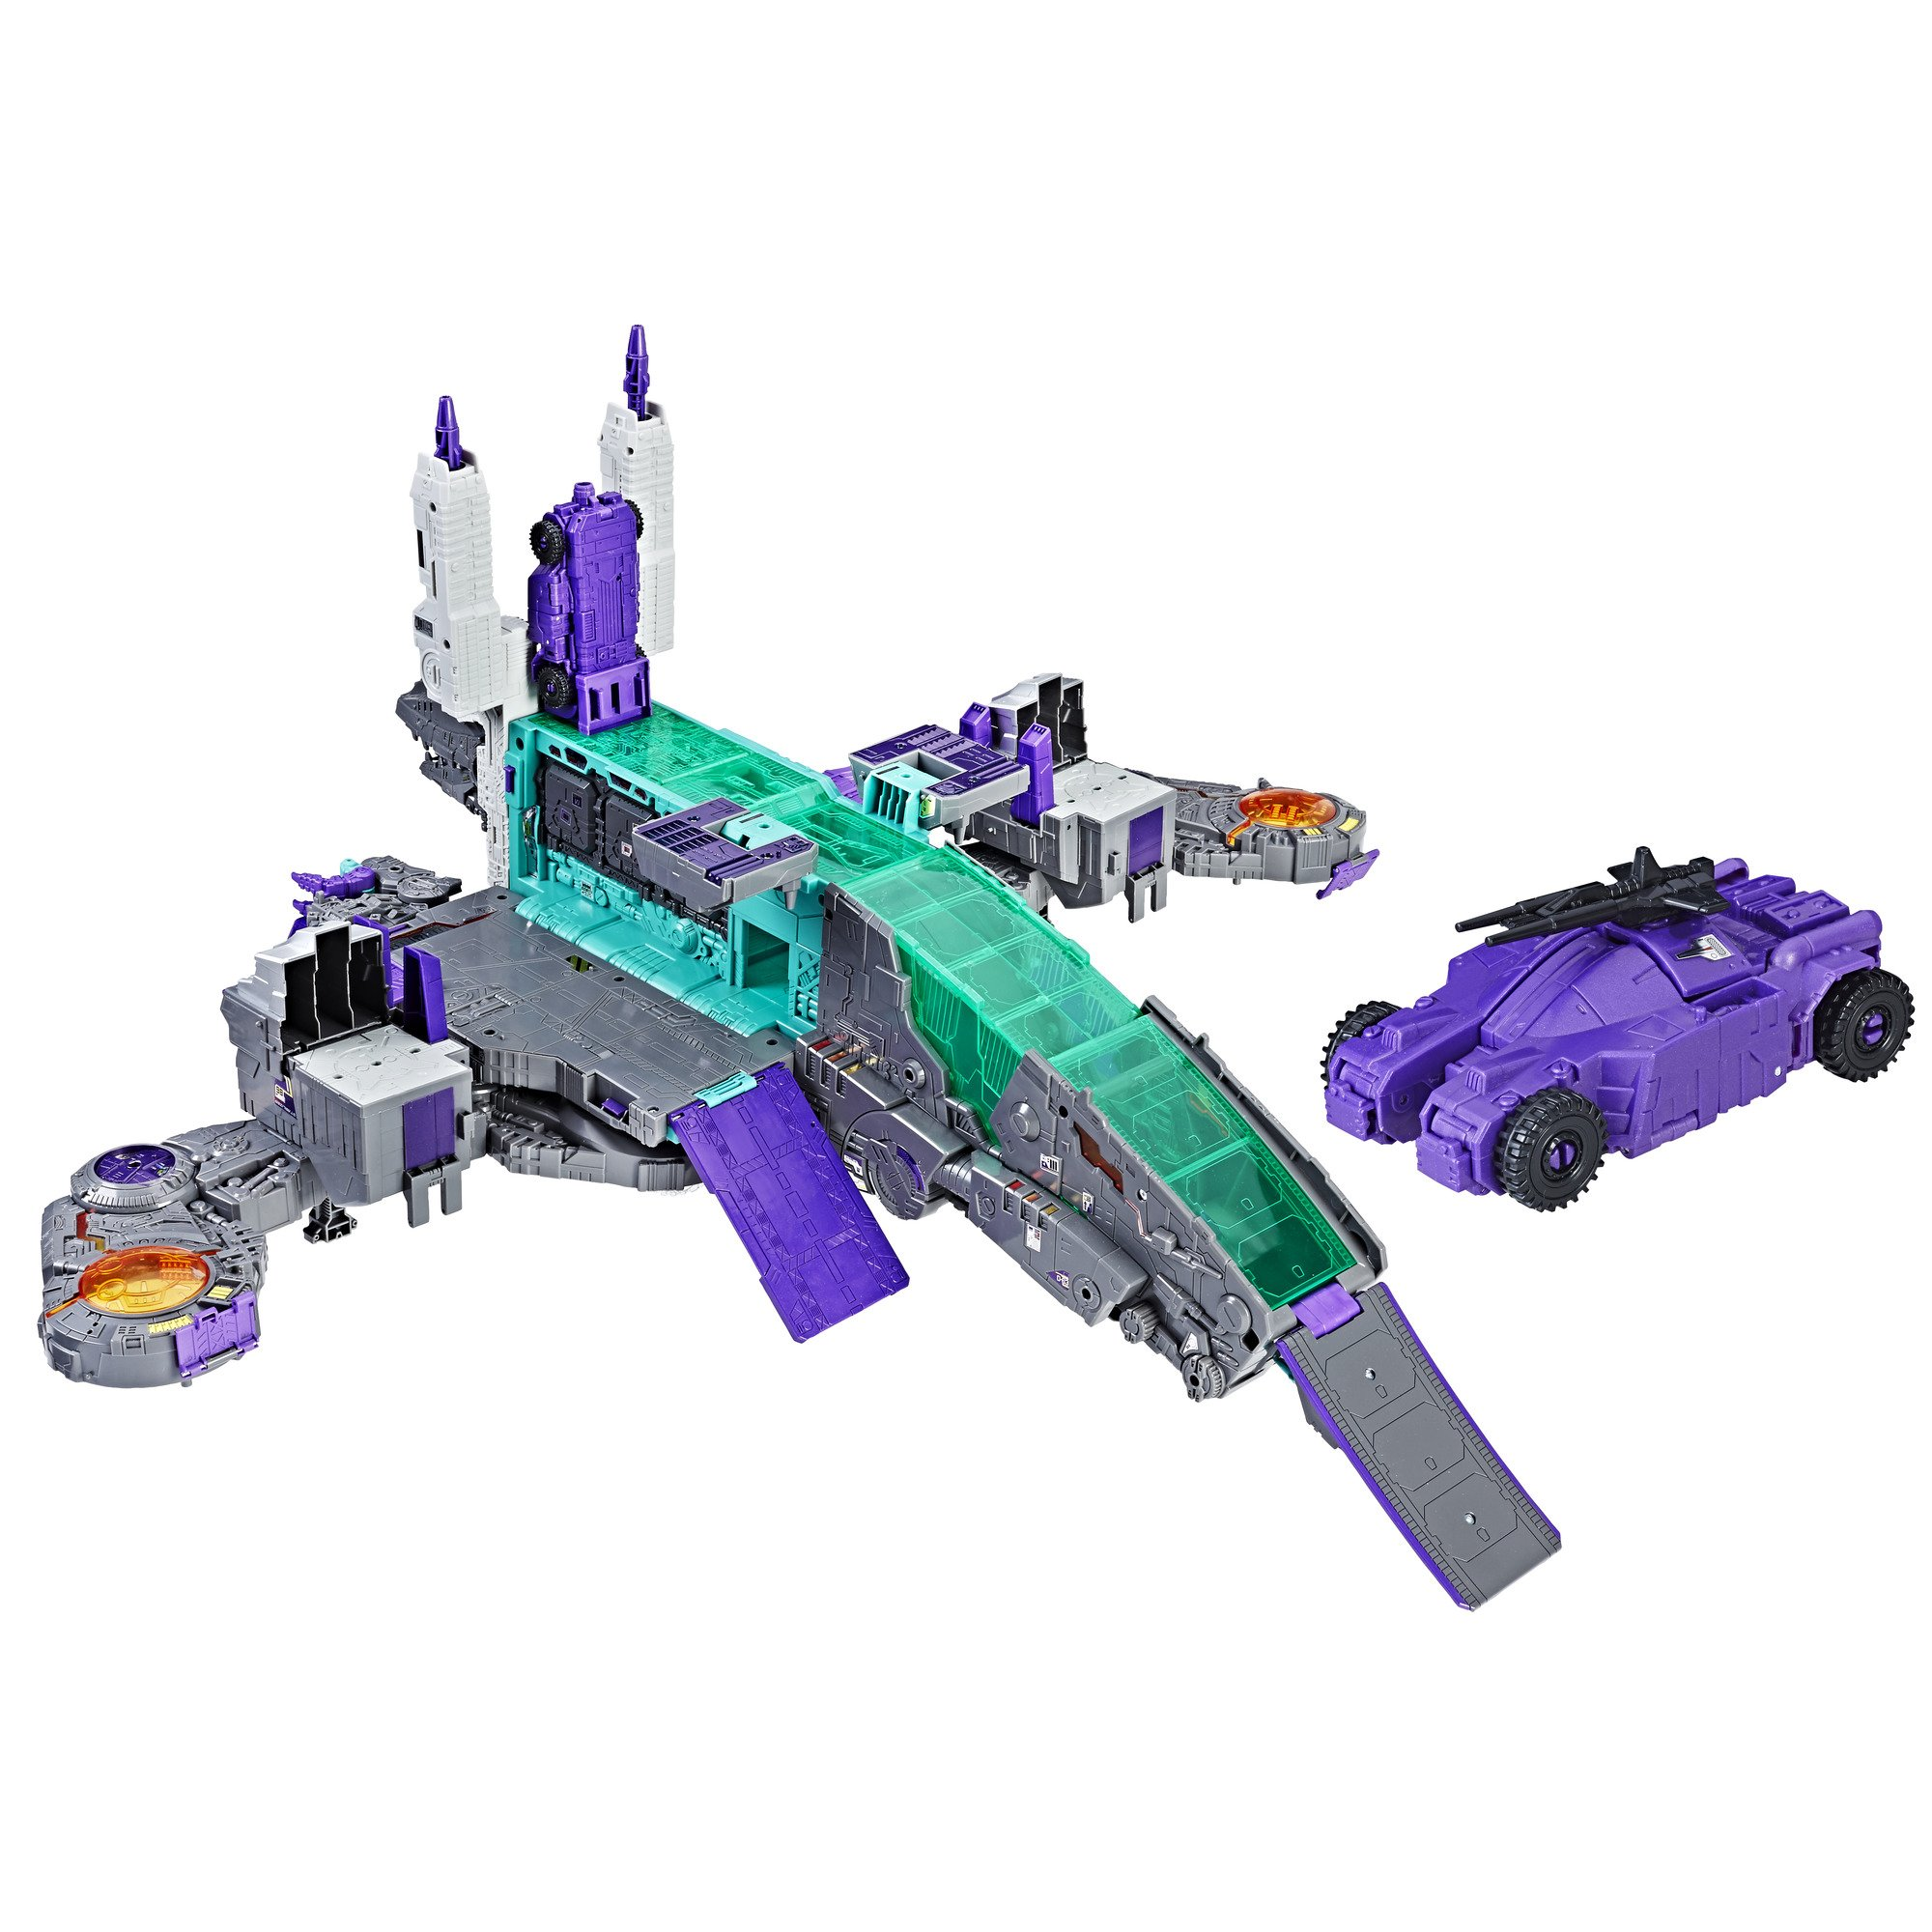 Transformers Generations Titans Return Titan Class Trypticon by Transformers (Image #1)